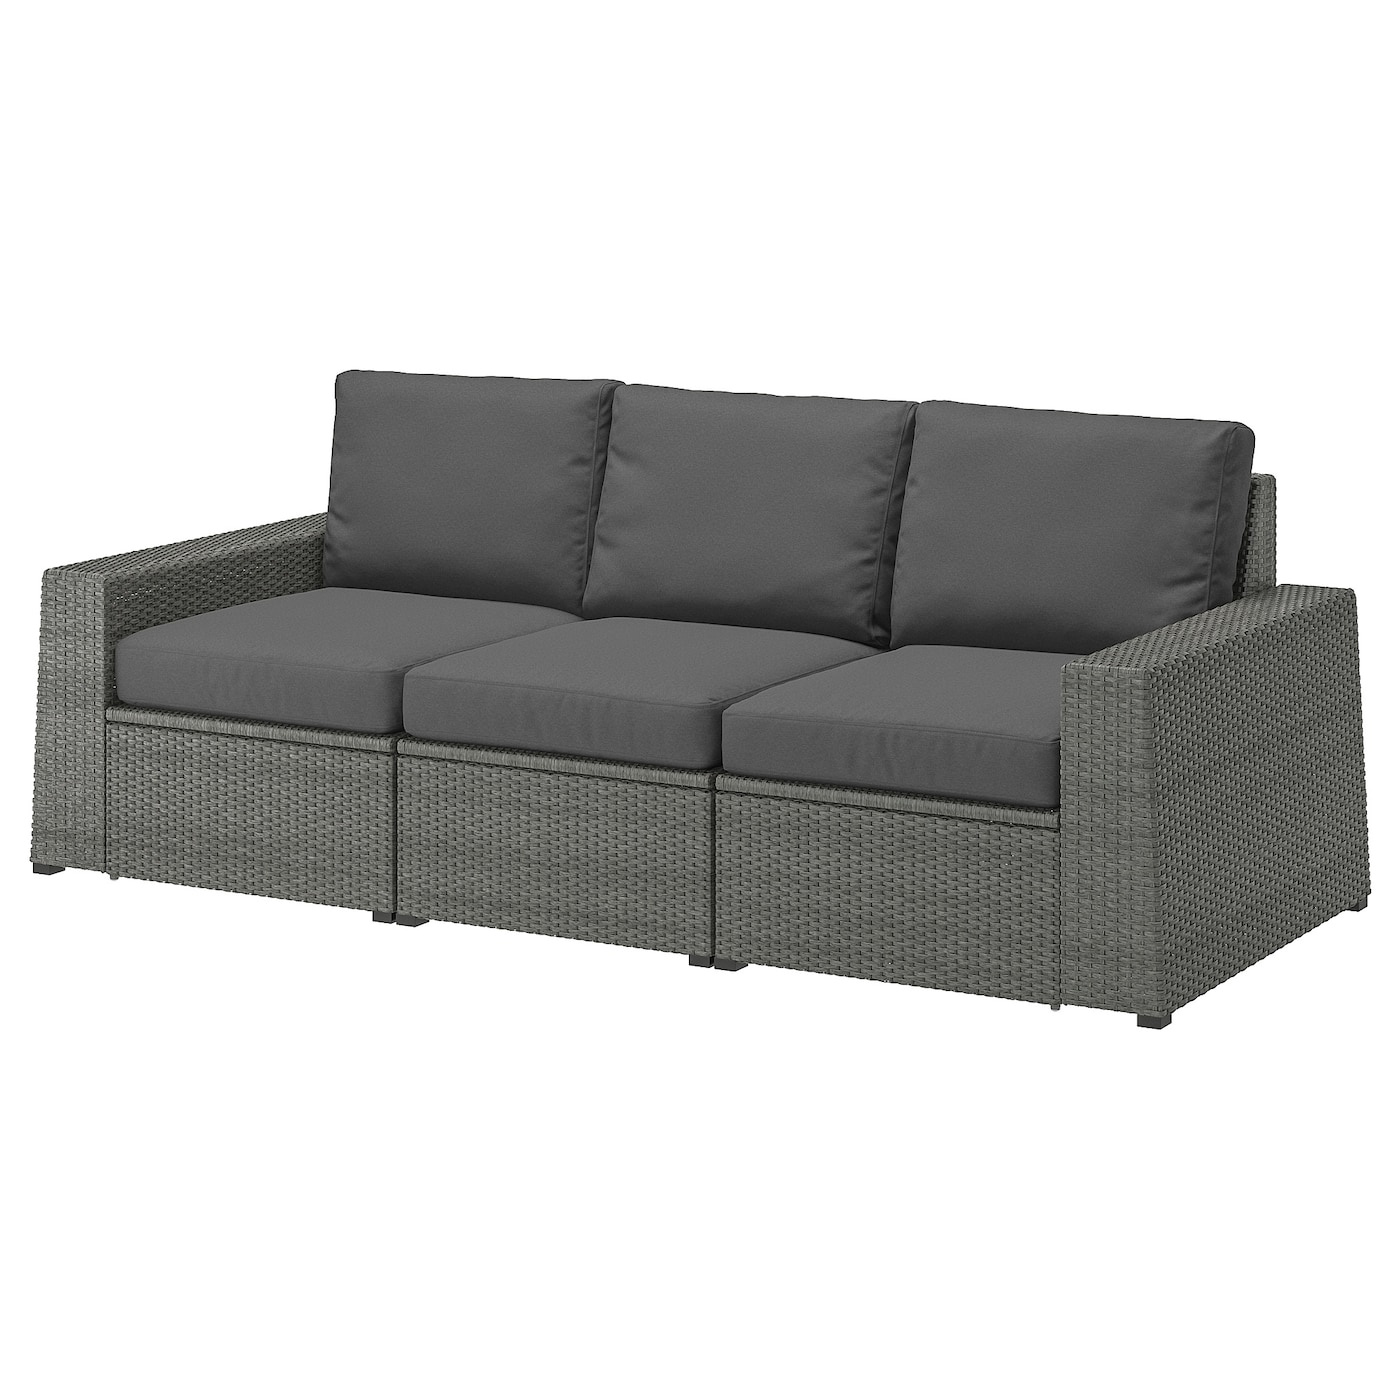 IKEA SOLLERÖN 3-seat modular sofa, outdoor Practical storage space under the seat.